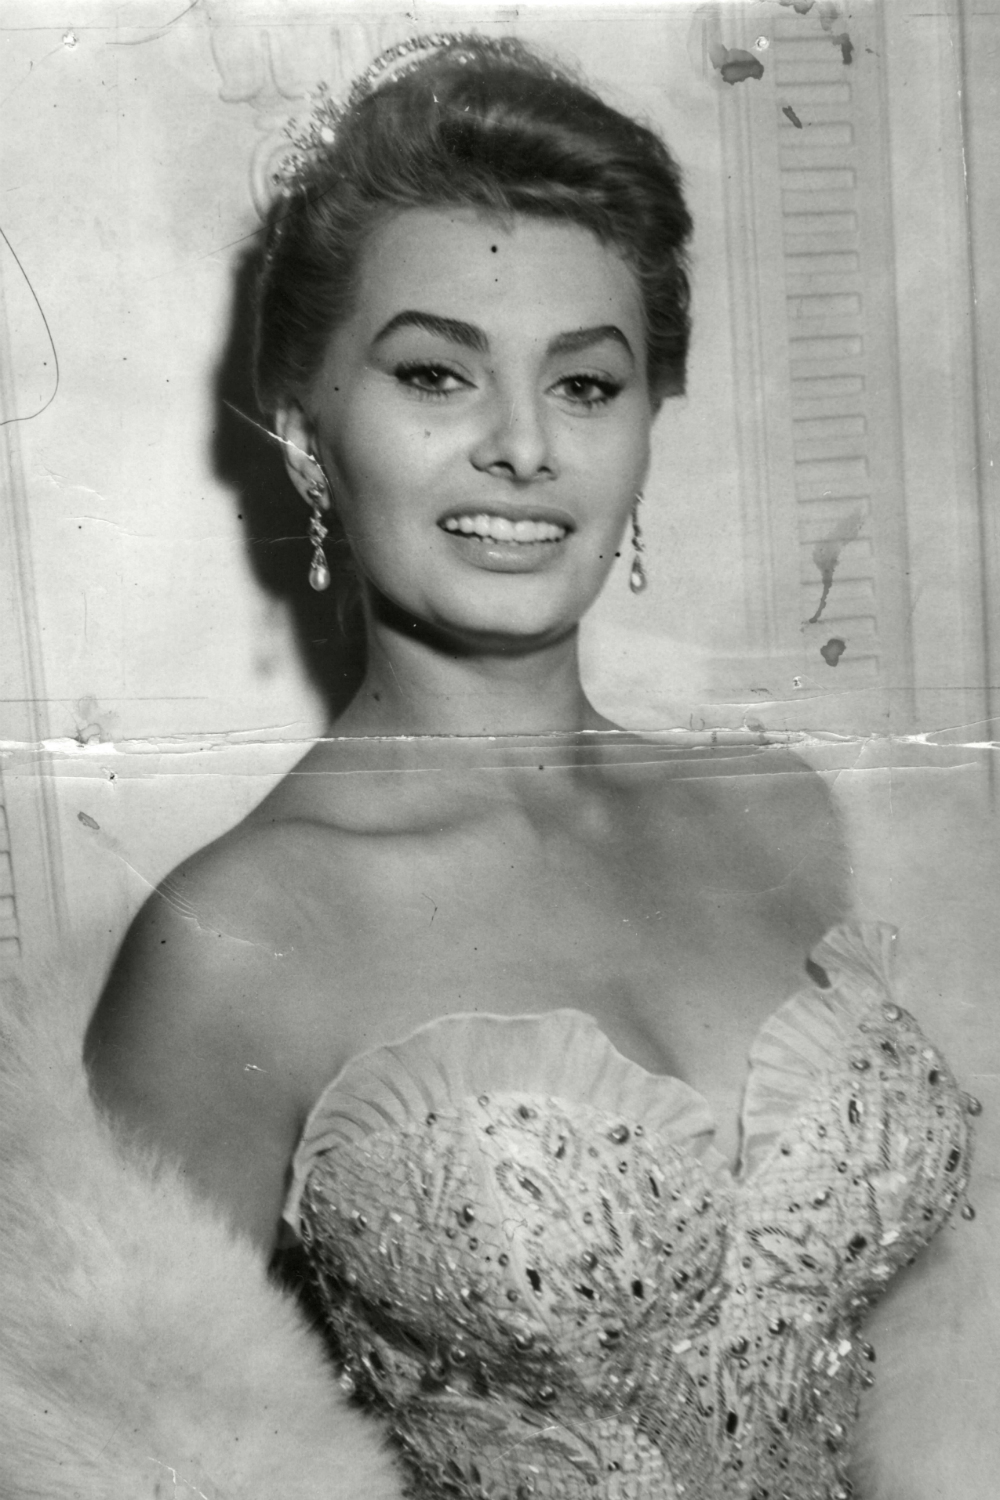 Sophia Loren 1950s fashion moments